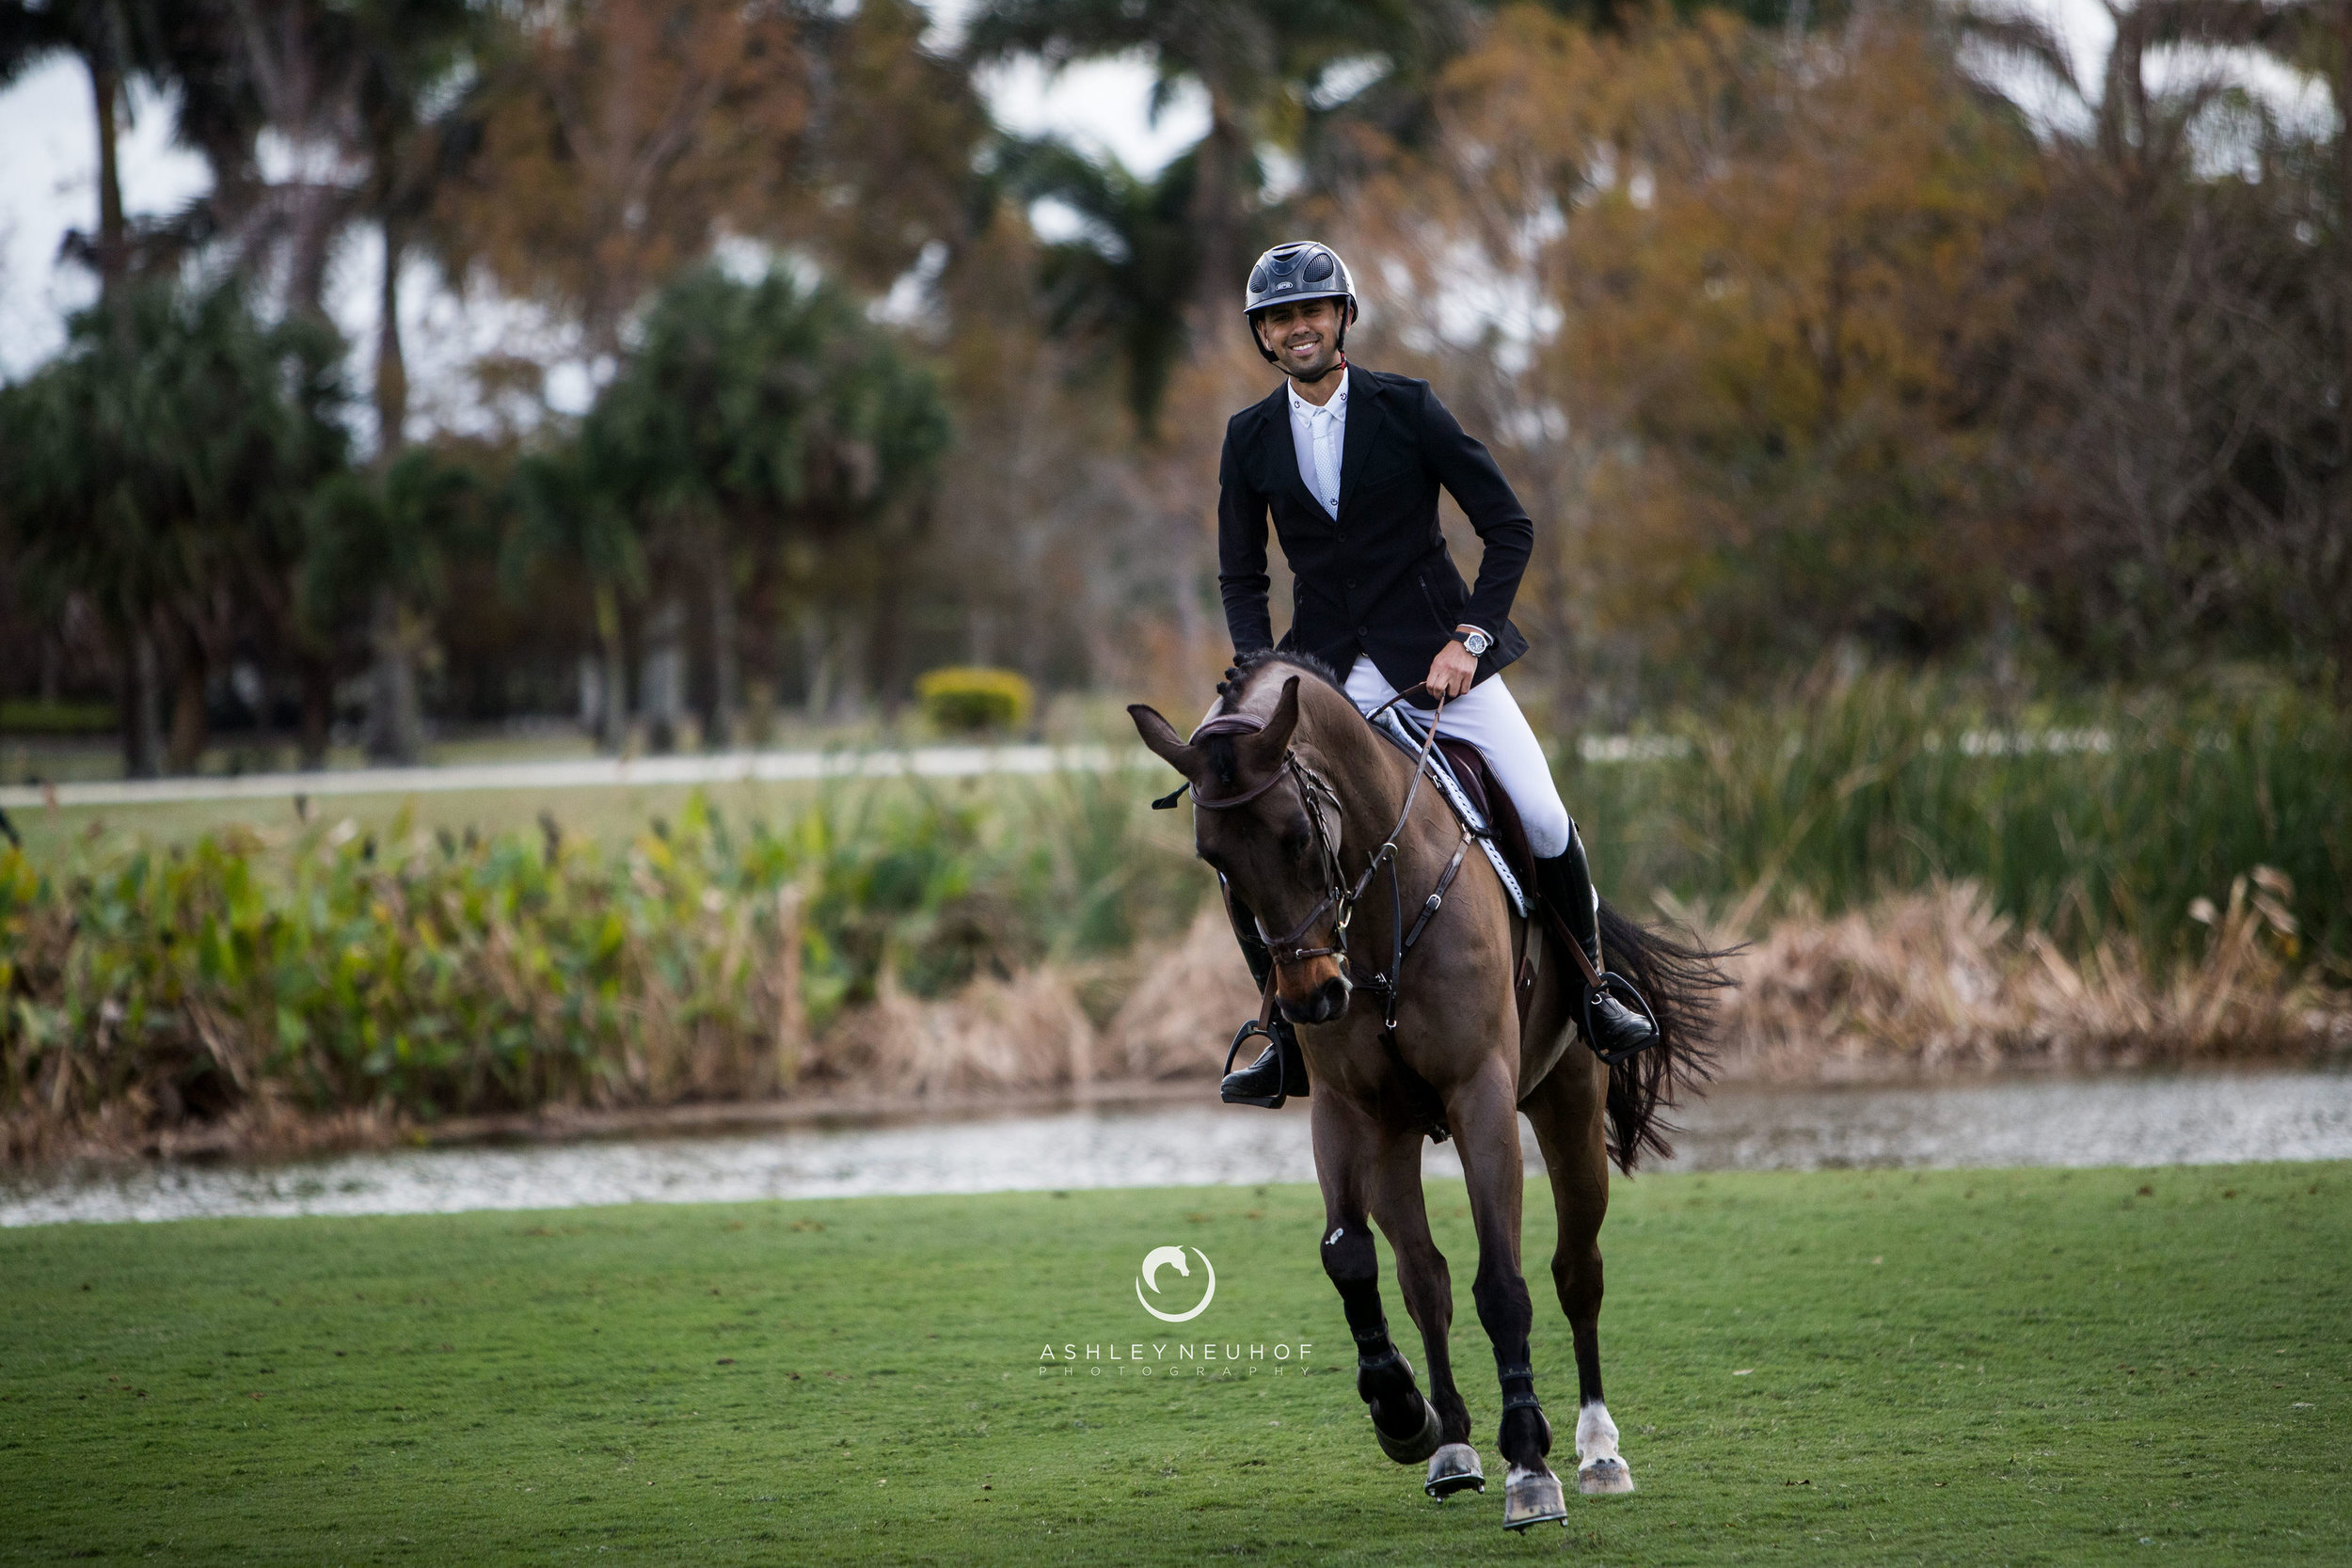 Nayel Nassar and Lucifer V at Palm Beach Masters 2019. Photo by Ashley Neuhof Photography.